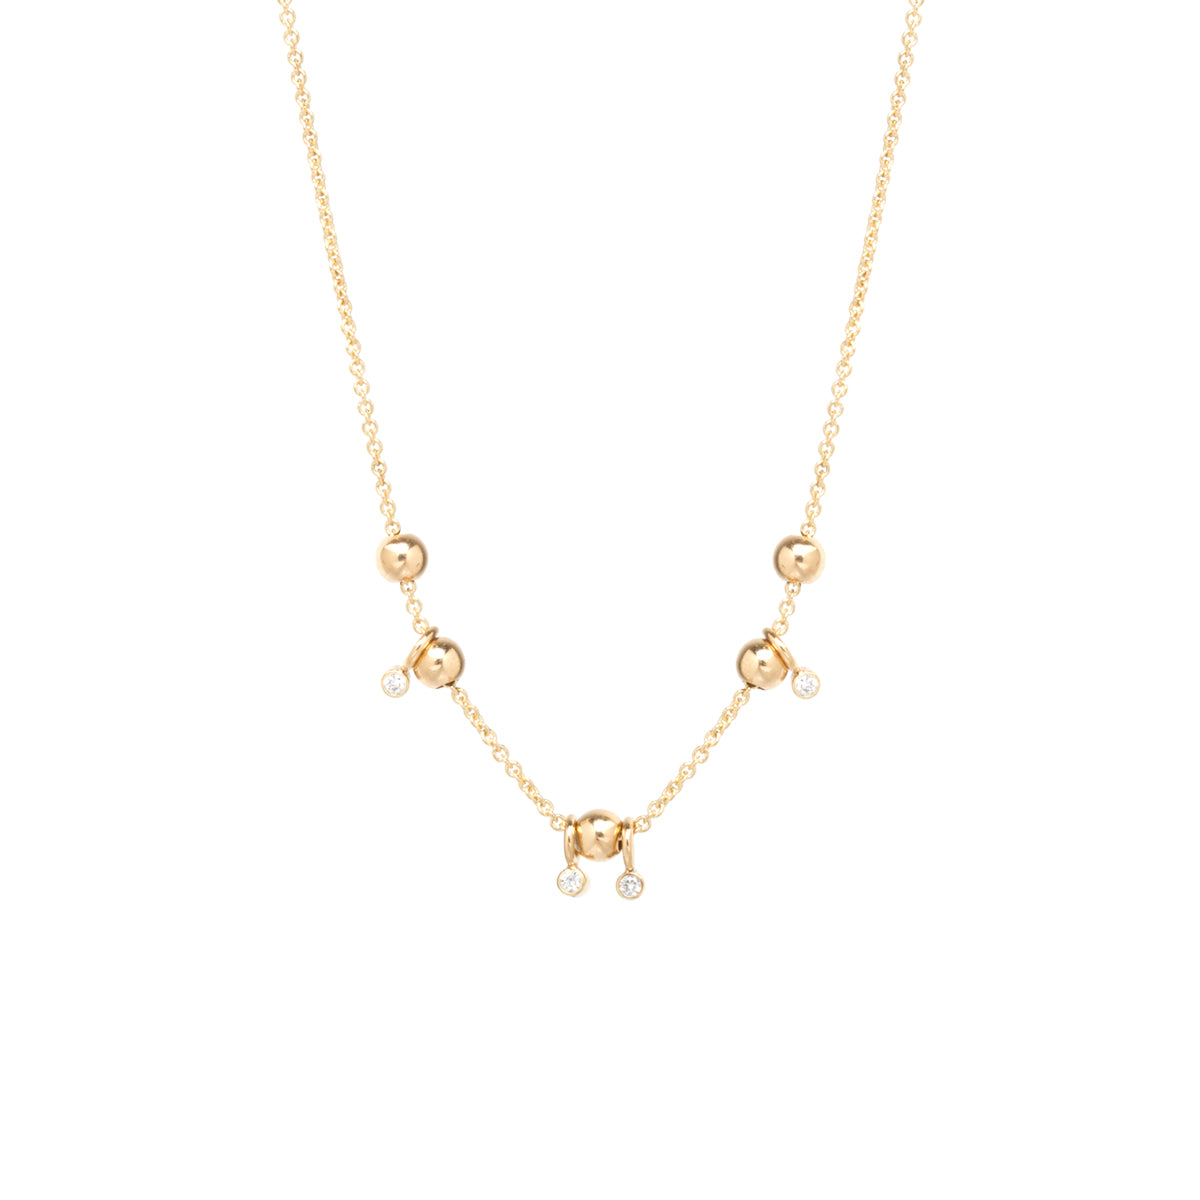 14k gold 5 sliding bead and diamond adjustable necklace